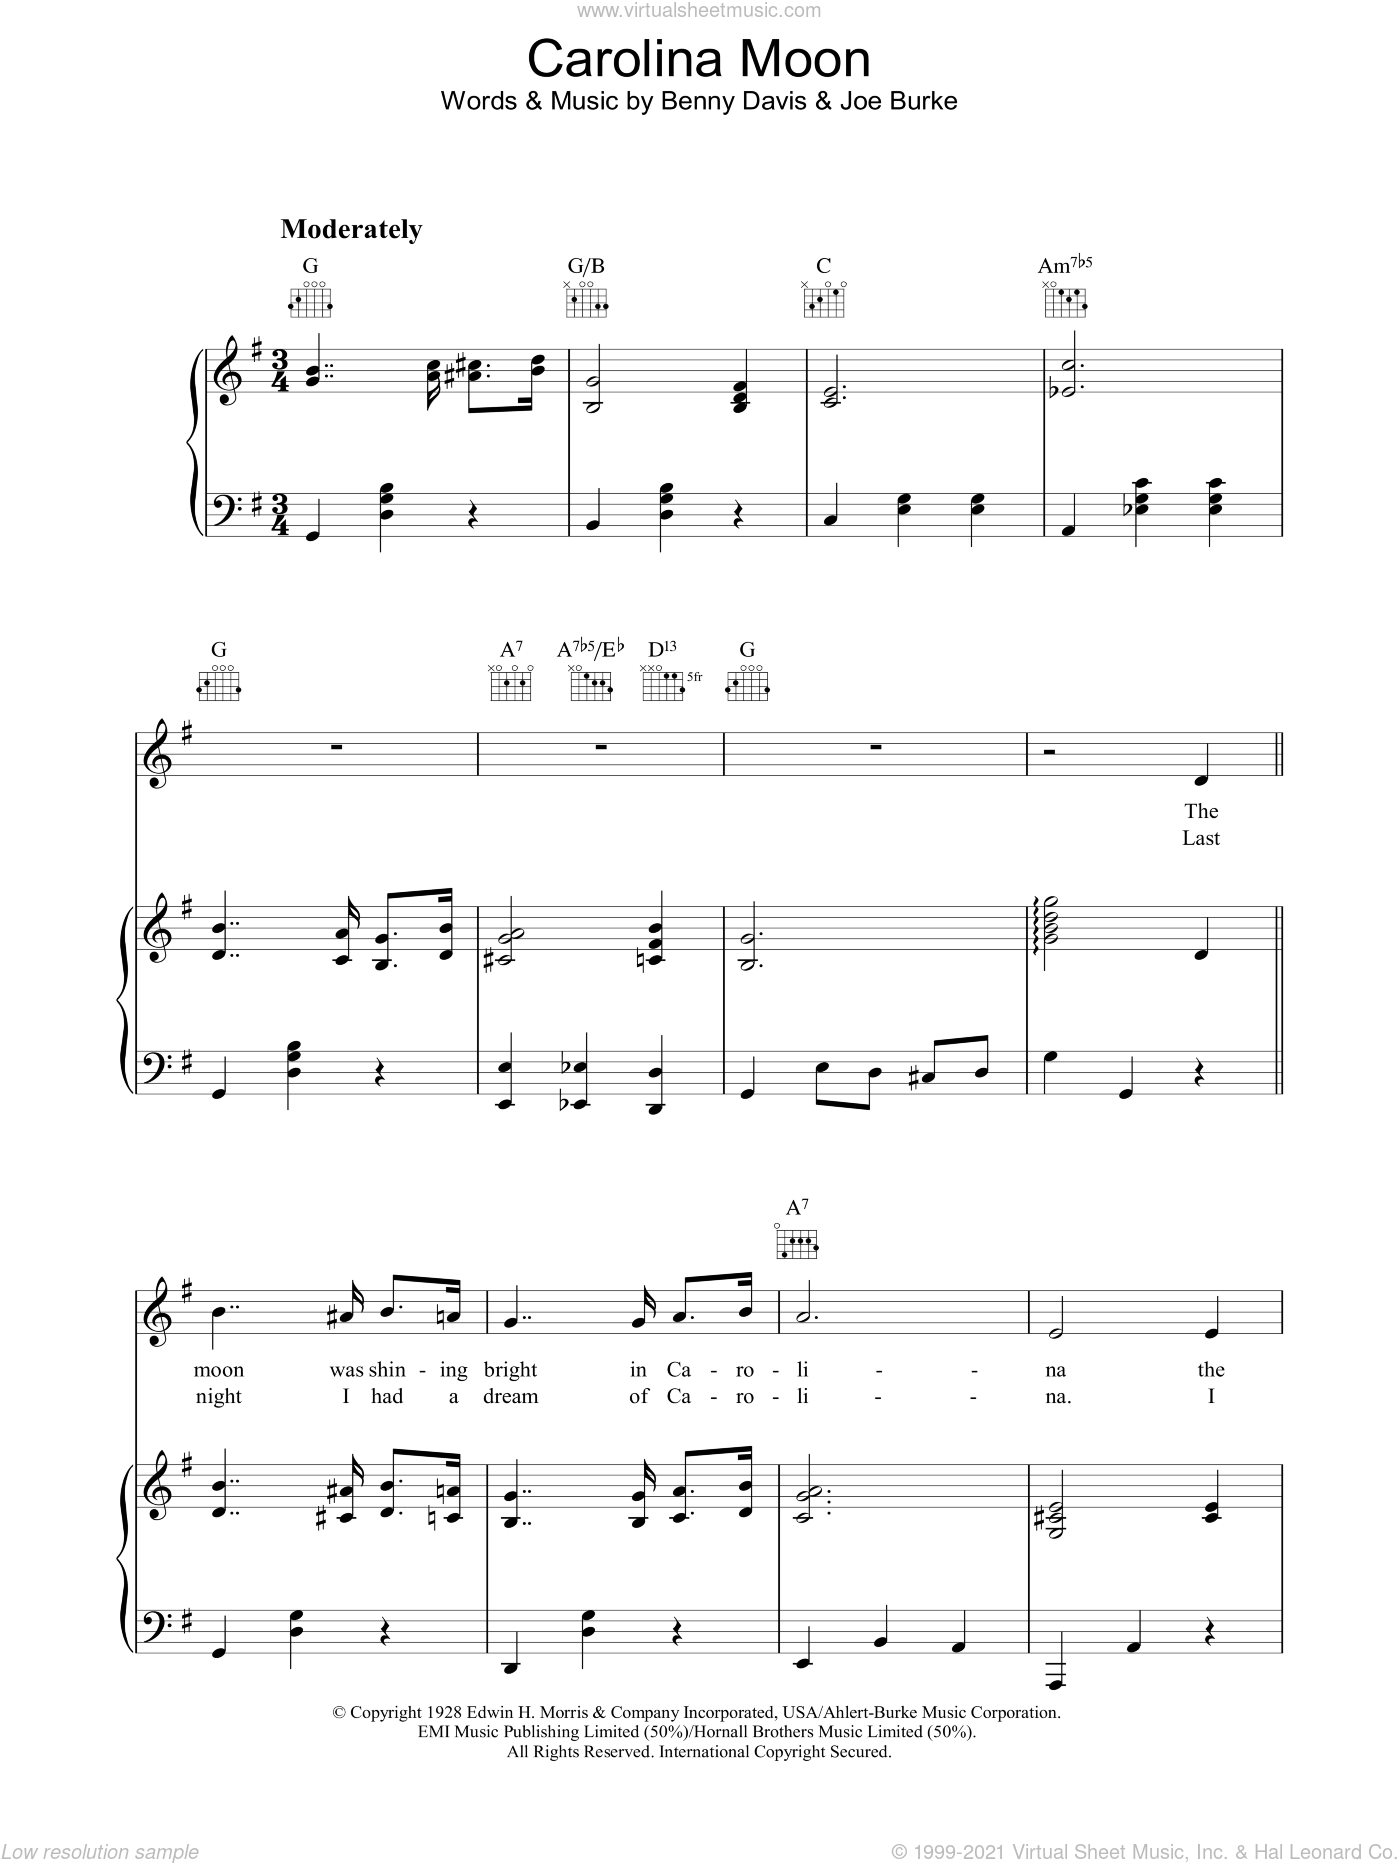 Carolina Moon sheet music for voice, piano or guitar by Benny Davis and Joe Burke. Score Image Preview.